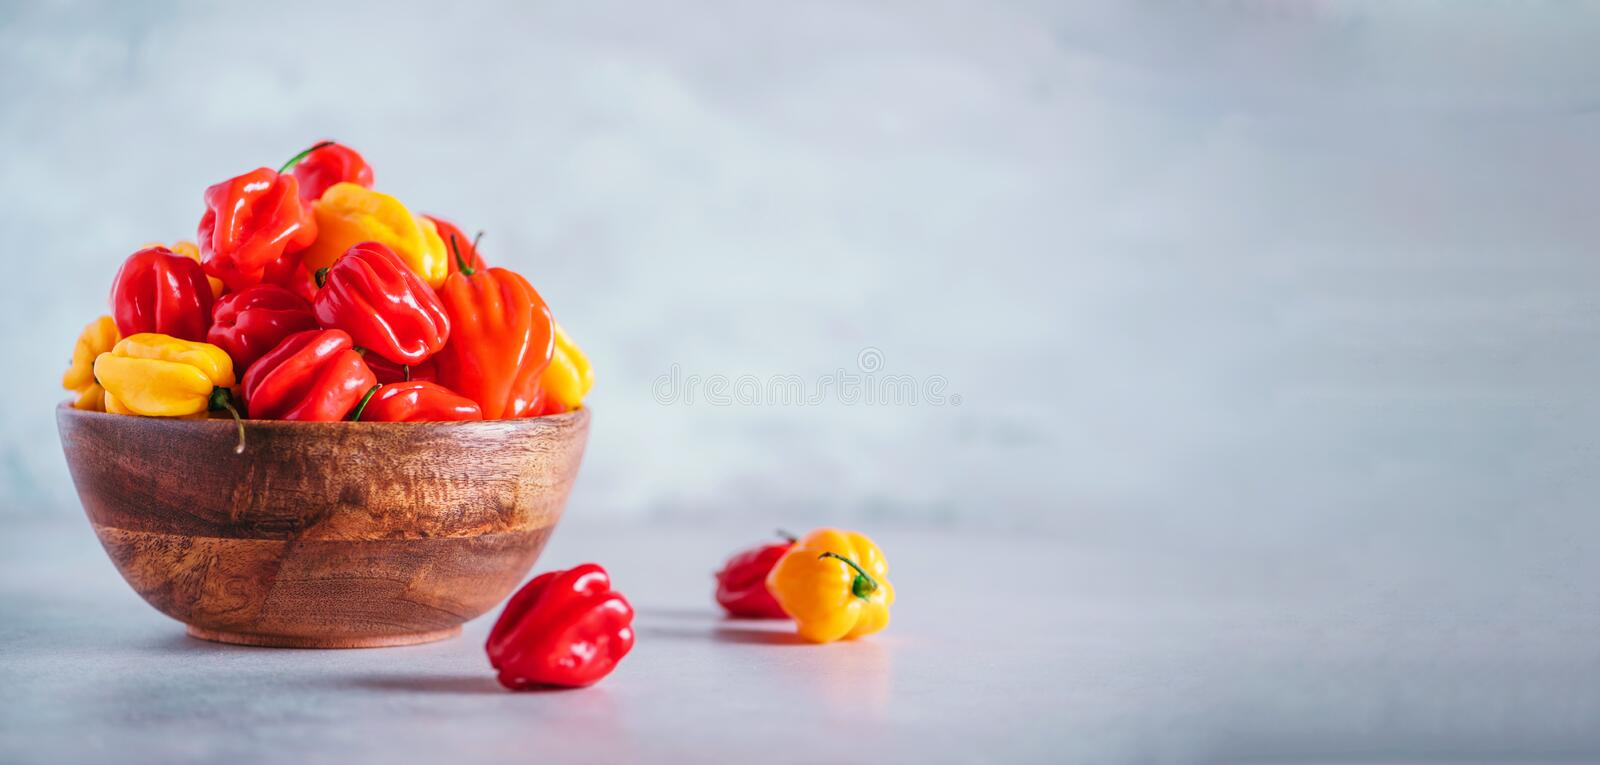 Yellow and red scotch bonnet chili peppers in wooden bowl over grey background. Copy space. Yellow and red scotch bonnet chili peppers in wooden bowl over grey royalty free stock images